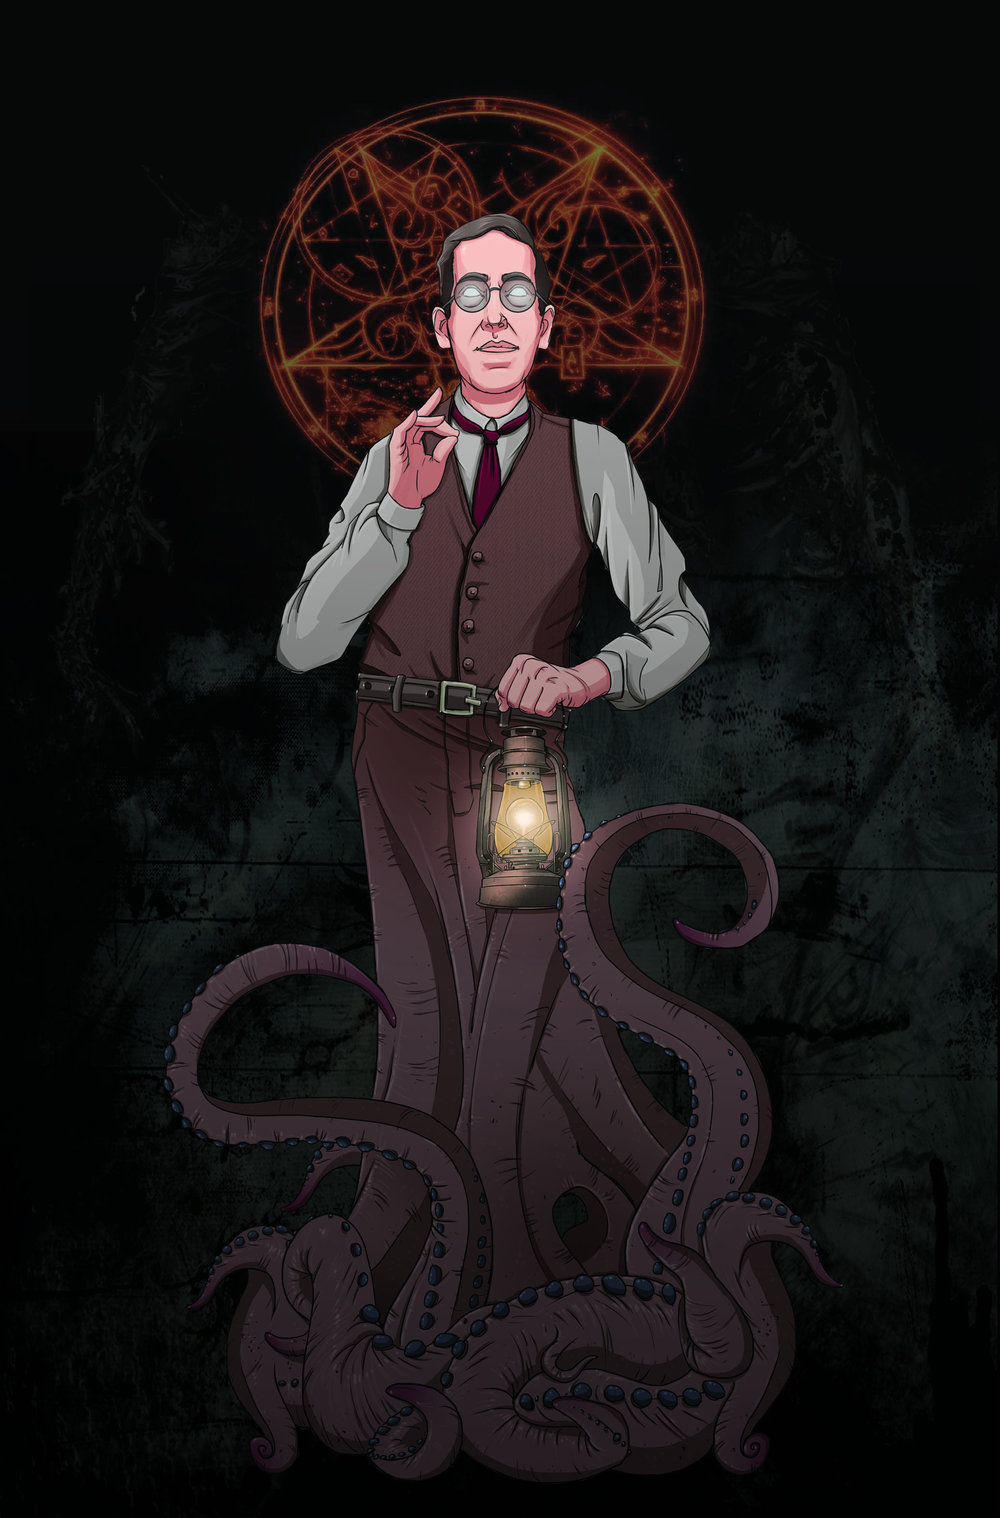 lovecraft.jpg